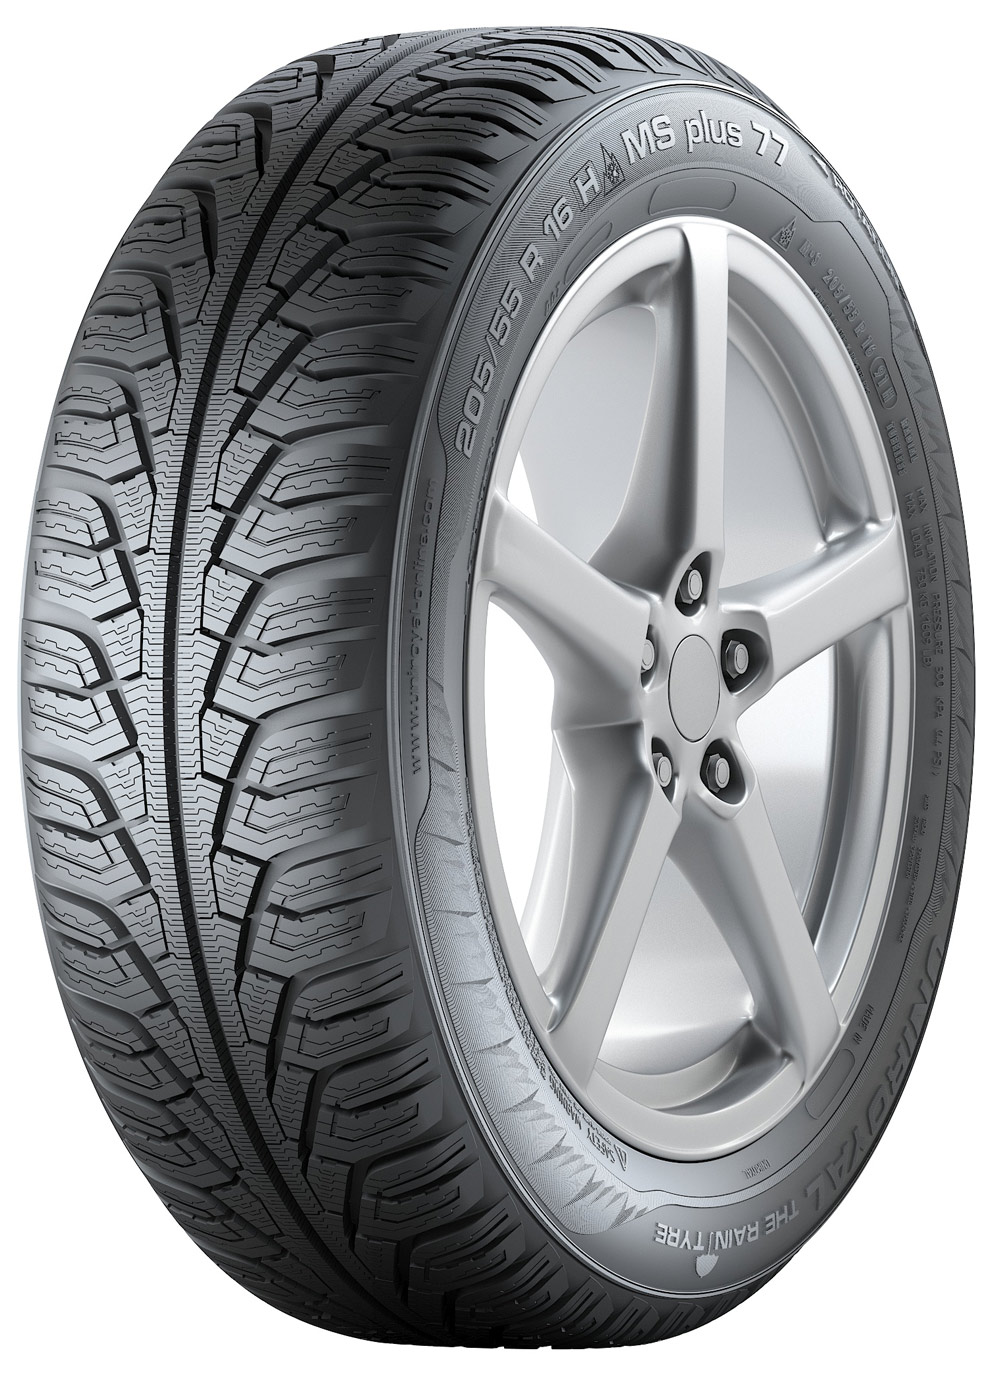 UNIROYAL MS PLUS 77 185/60 R 14